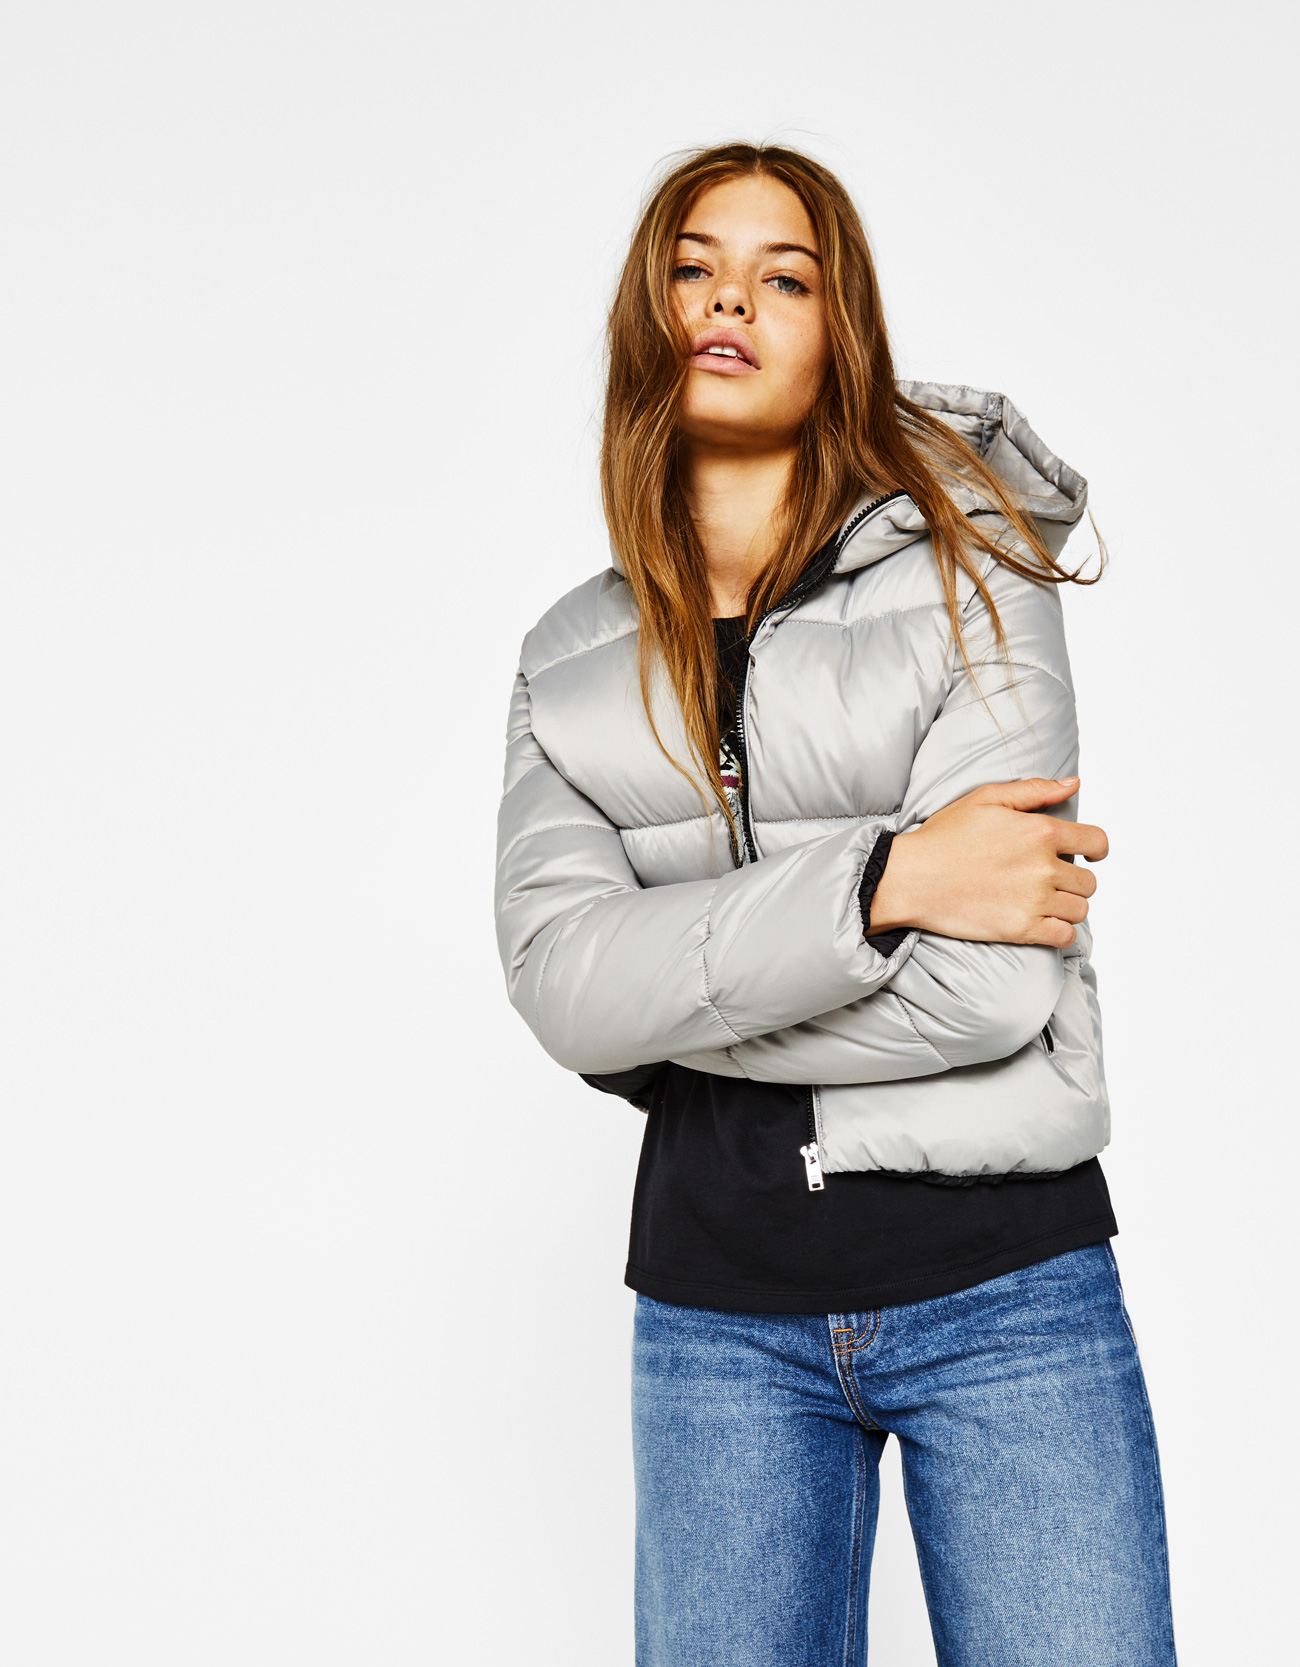 b0bbb08bdb38e Bershka Puffer jacket with hood at £25.99 | love the brands